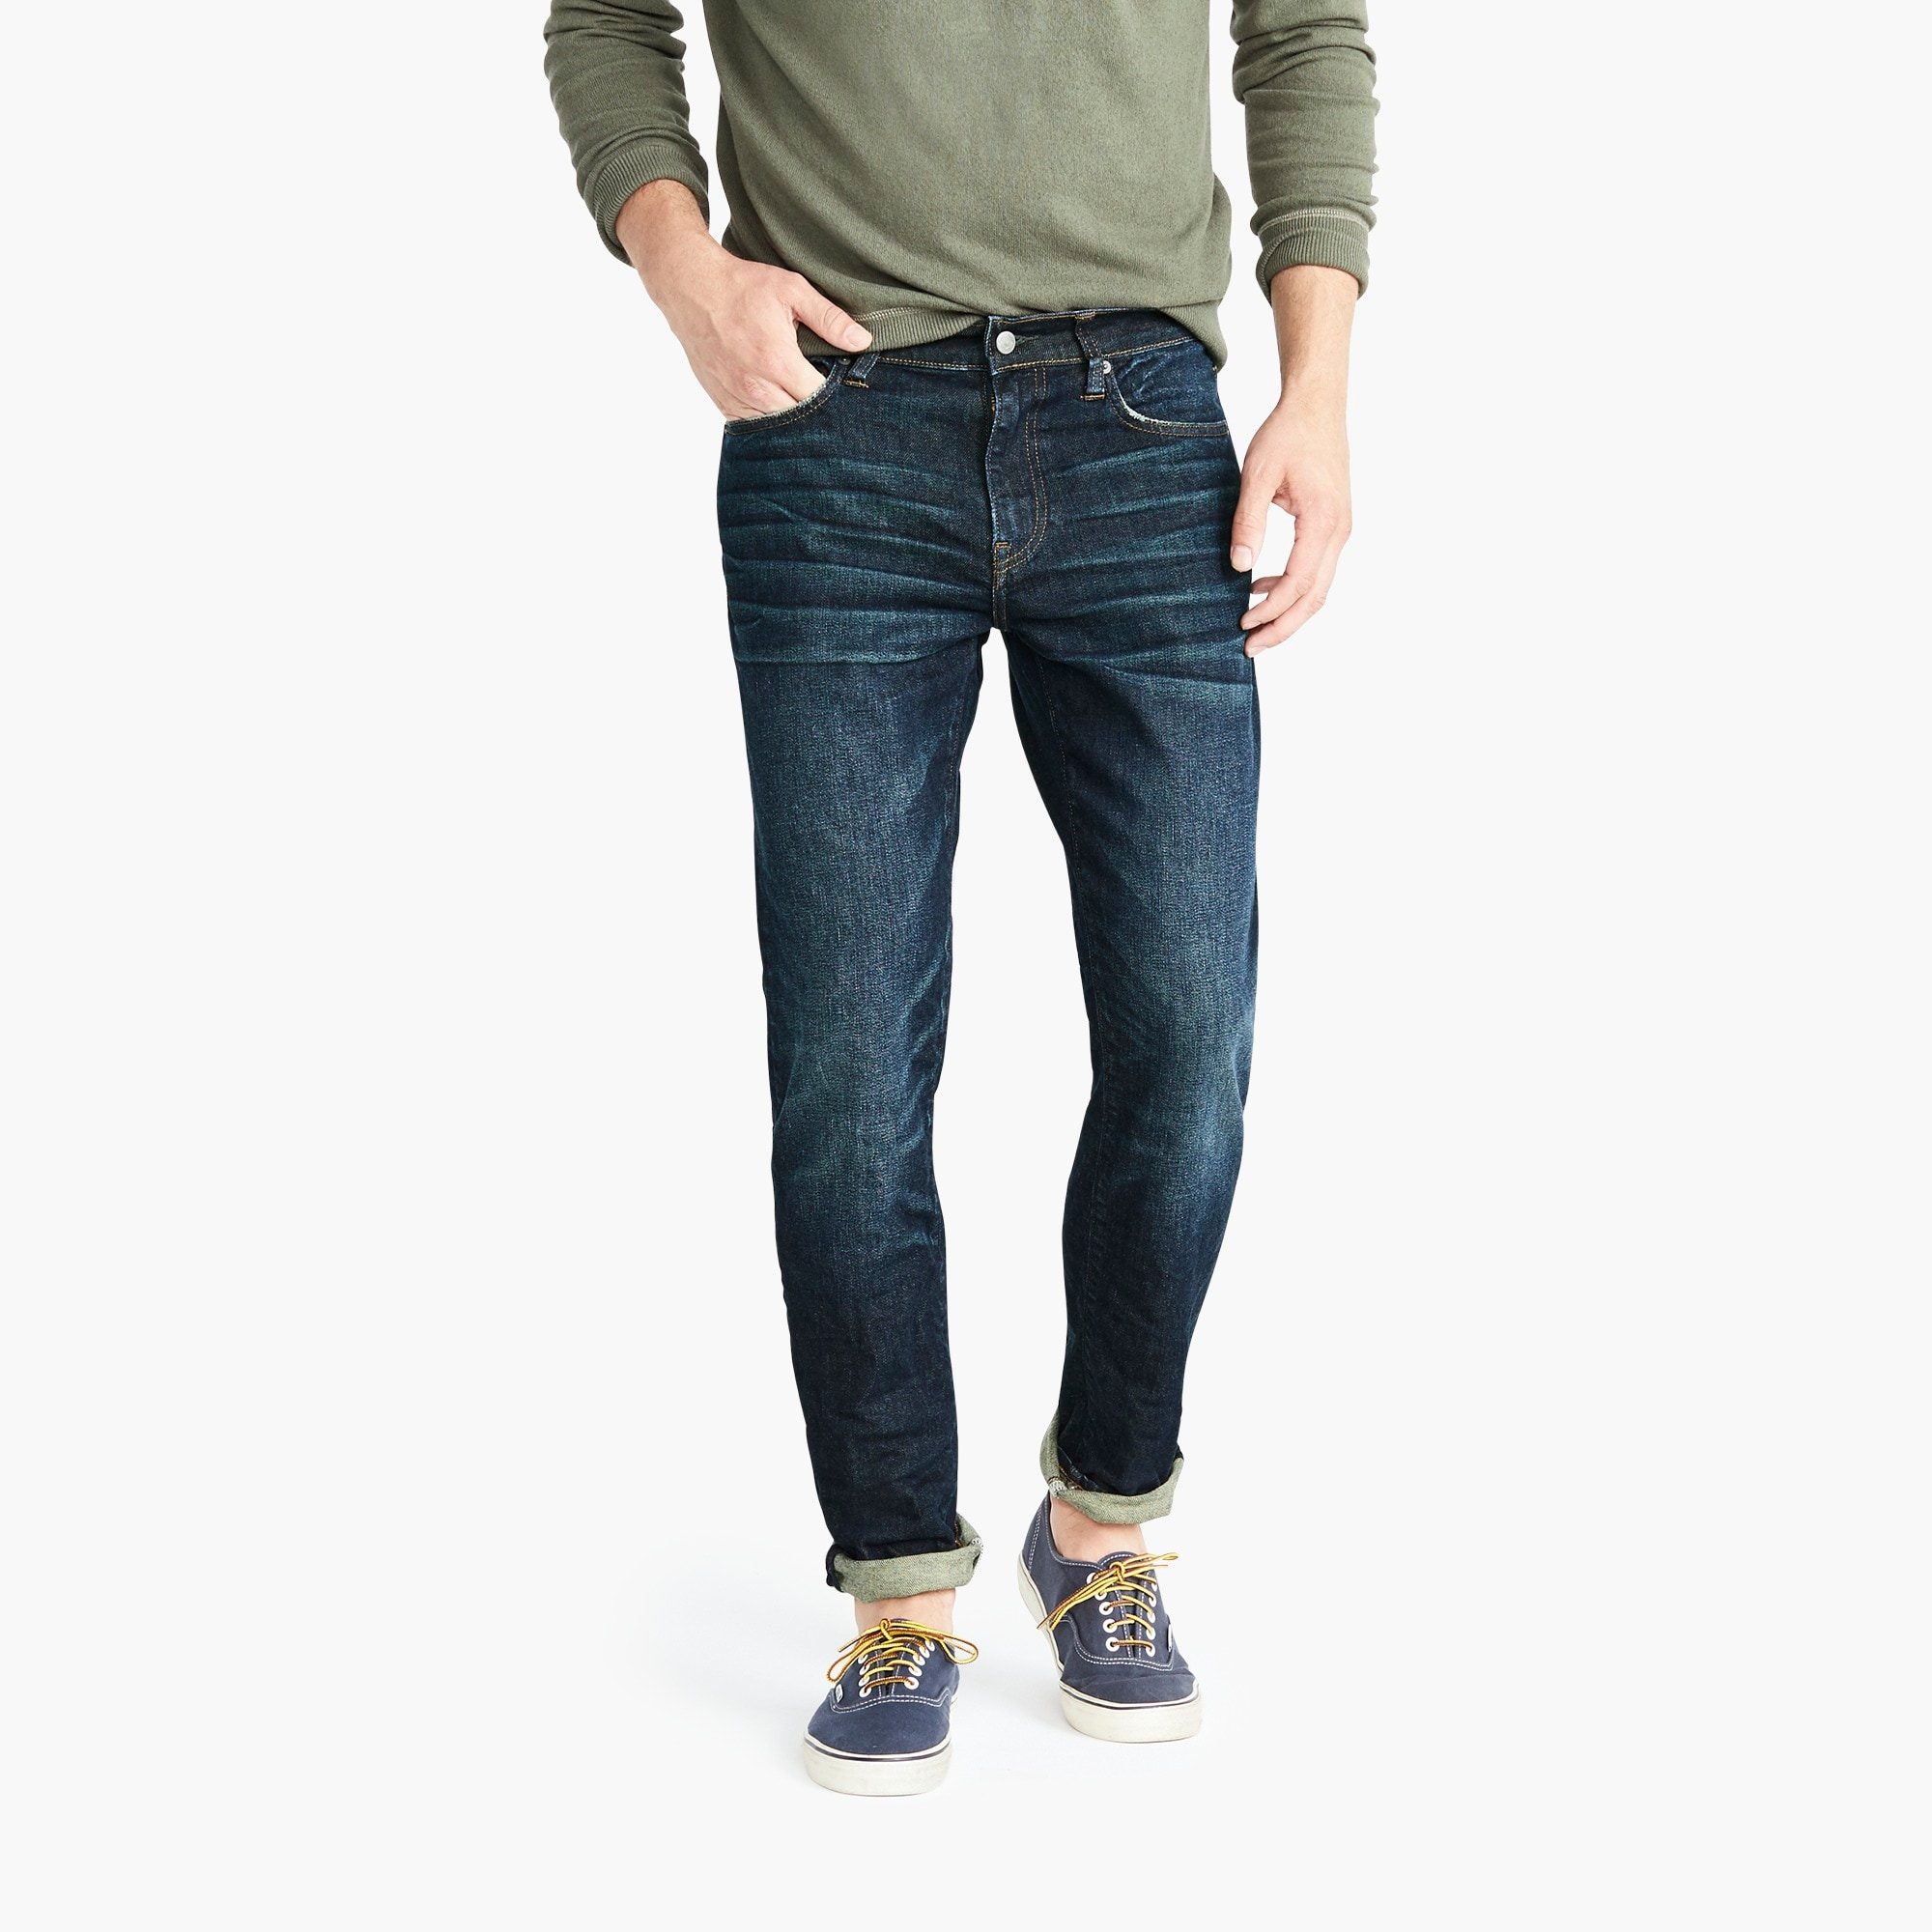 mens 484 Slim-fit jean in stretch dark worn in Japanese denim